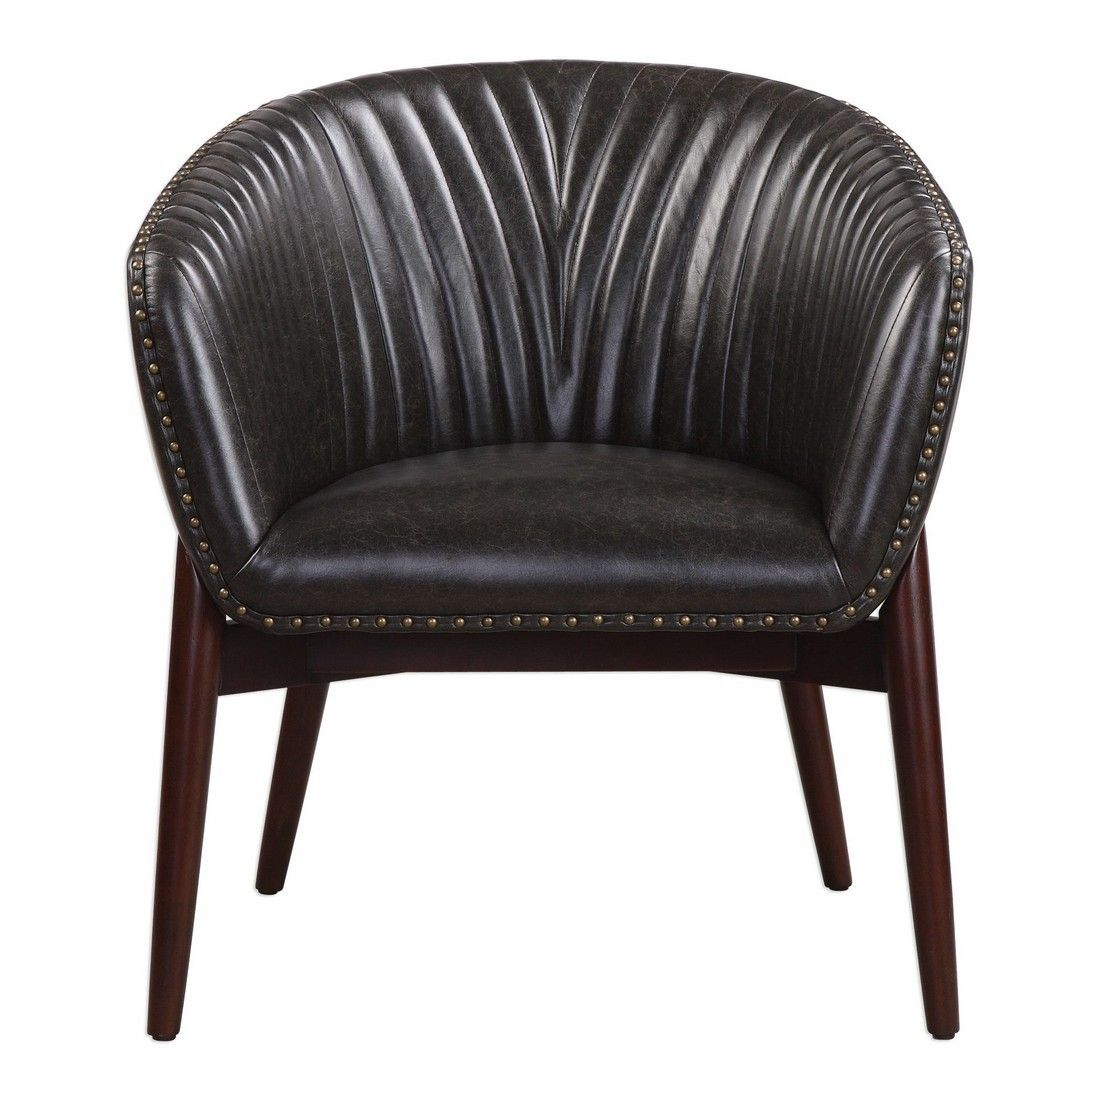 Awesome Uttermost Anders 31 5 Onyx Faux Leather Accent Chair In Walnut Stained Creativecarmelina Interior Chair Design Creativecarmelinacom